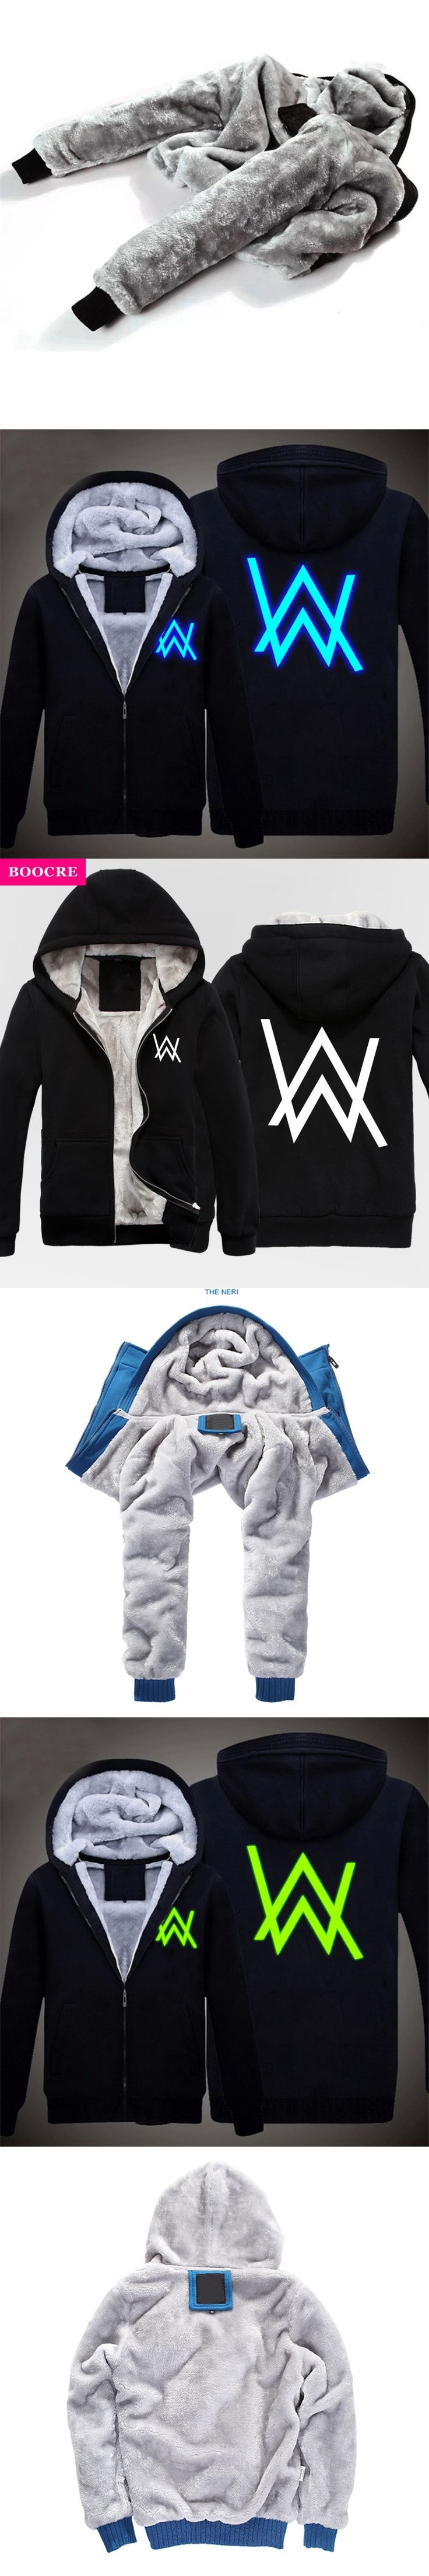 Jaket Hoodie Dj Armin Van Buuren 6 The 955 Best Alan Walker Images On Pinterest And Boocre Music Divine Comedy Faded Coat Thick Fleece Hoodies Same Paragraph Sweatshirts